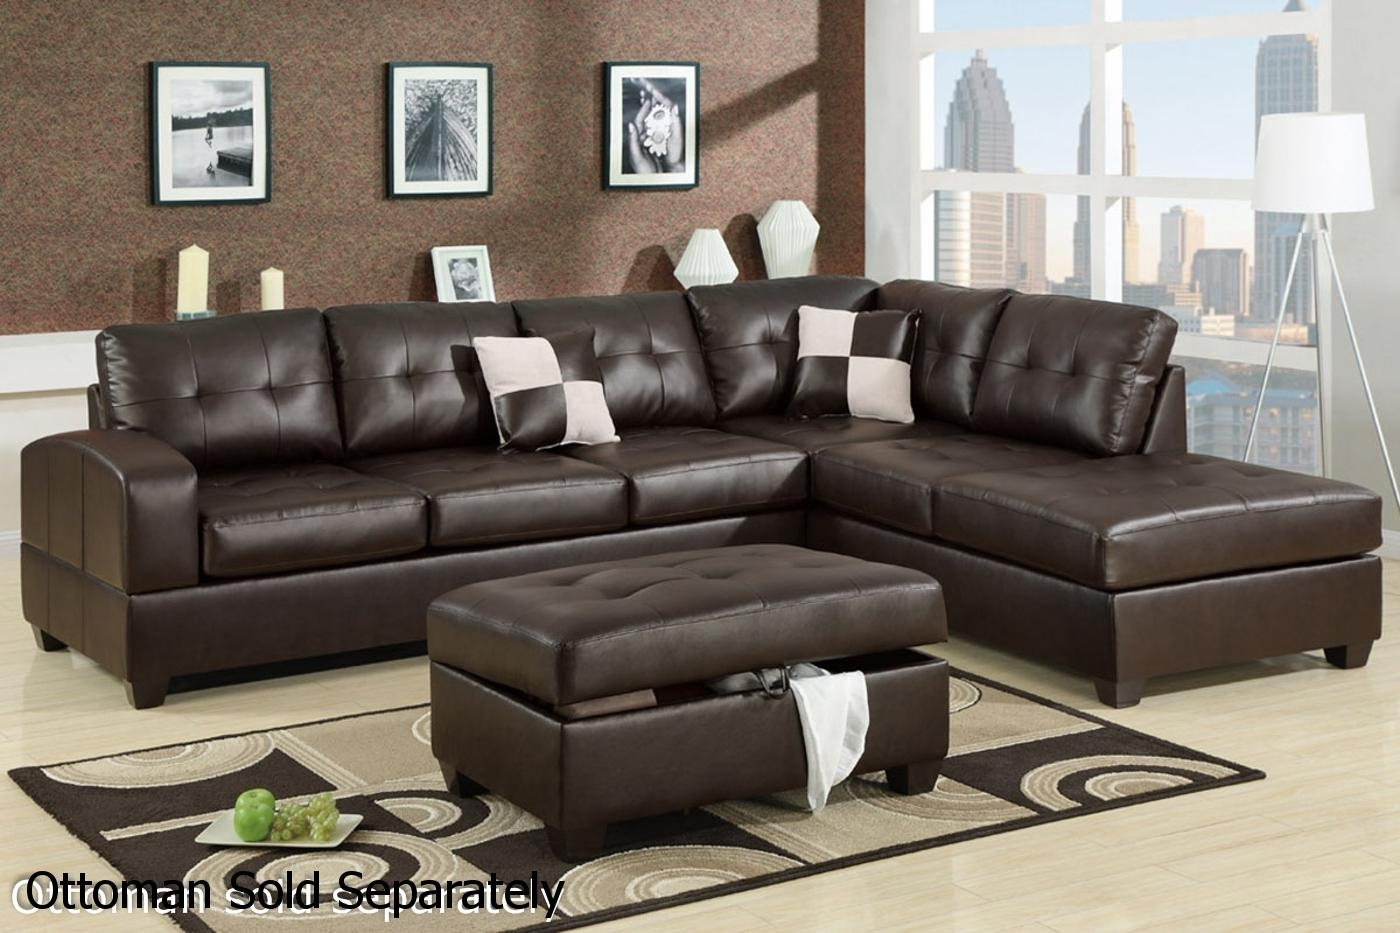 15 Best Collection of Sectional Sofas at Big Lots